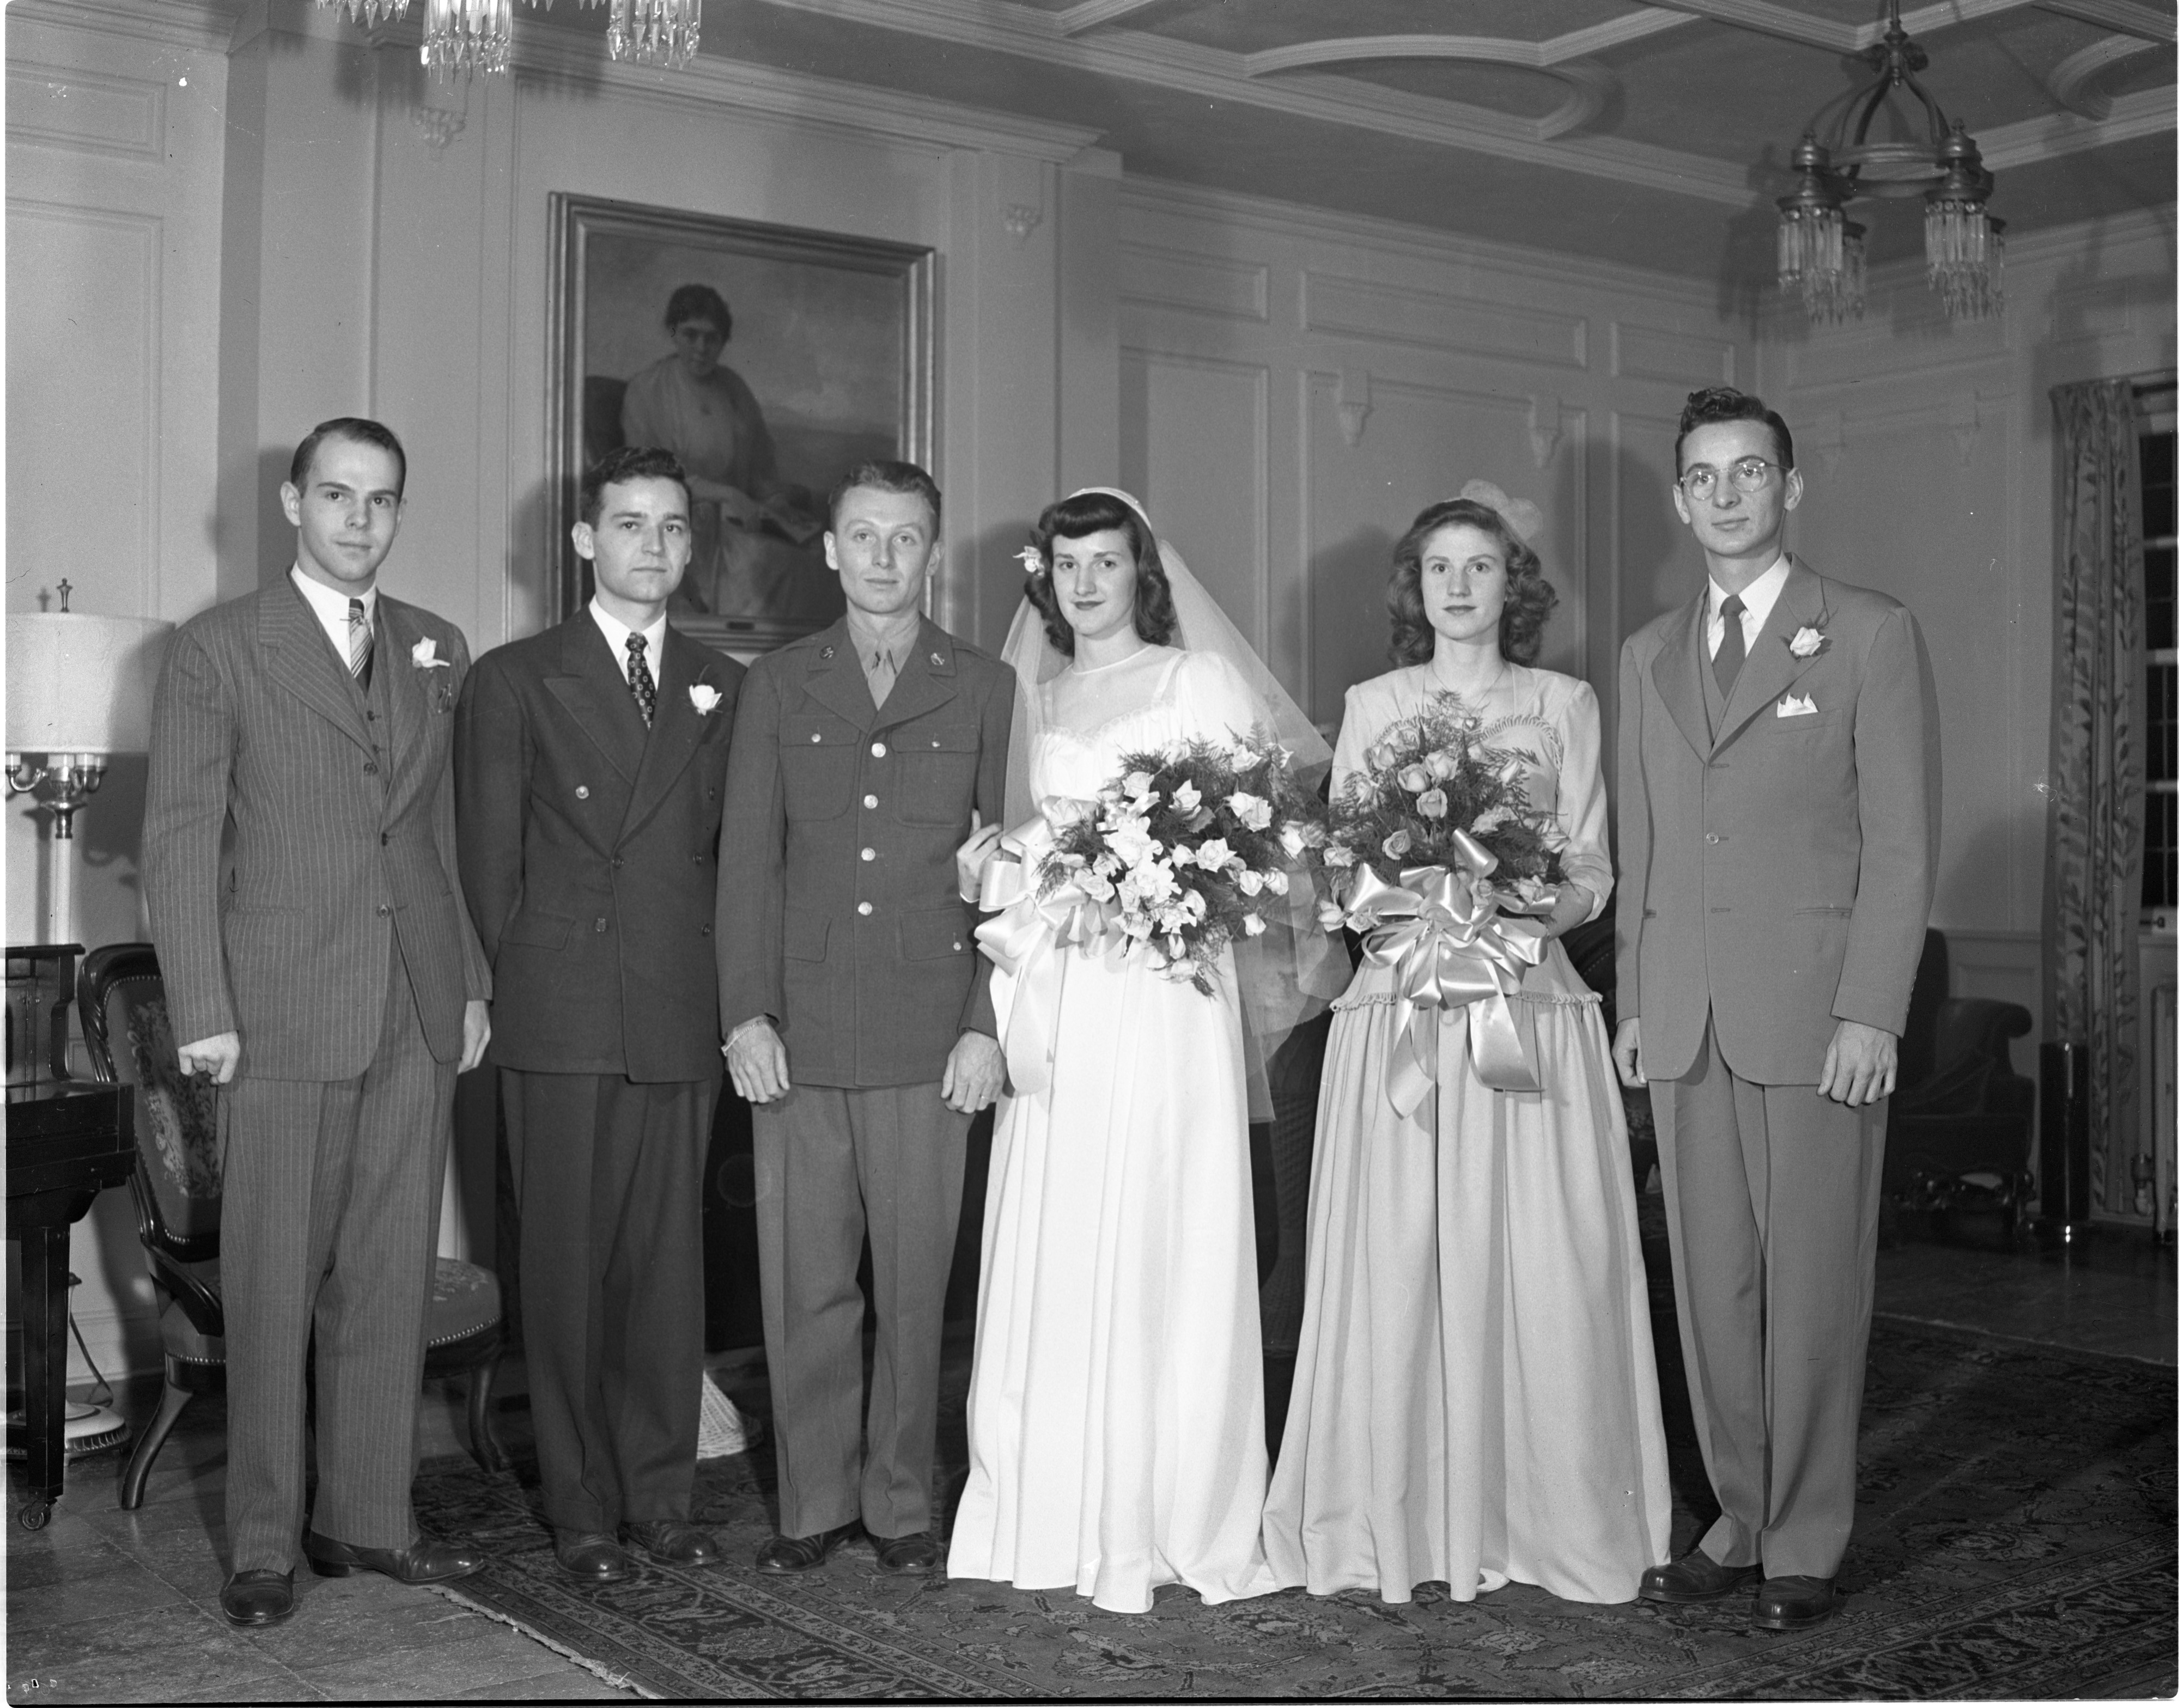 The Wedding Party of Wilbur & Patricia Wood - November 11, 1943 image